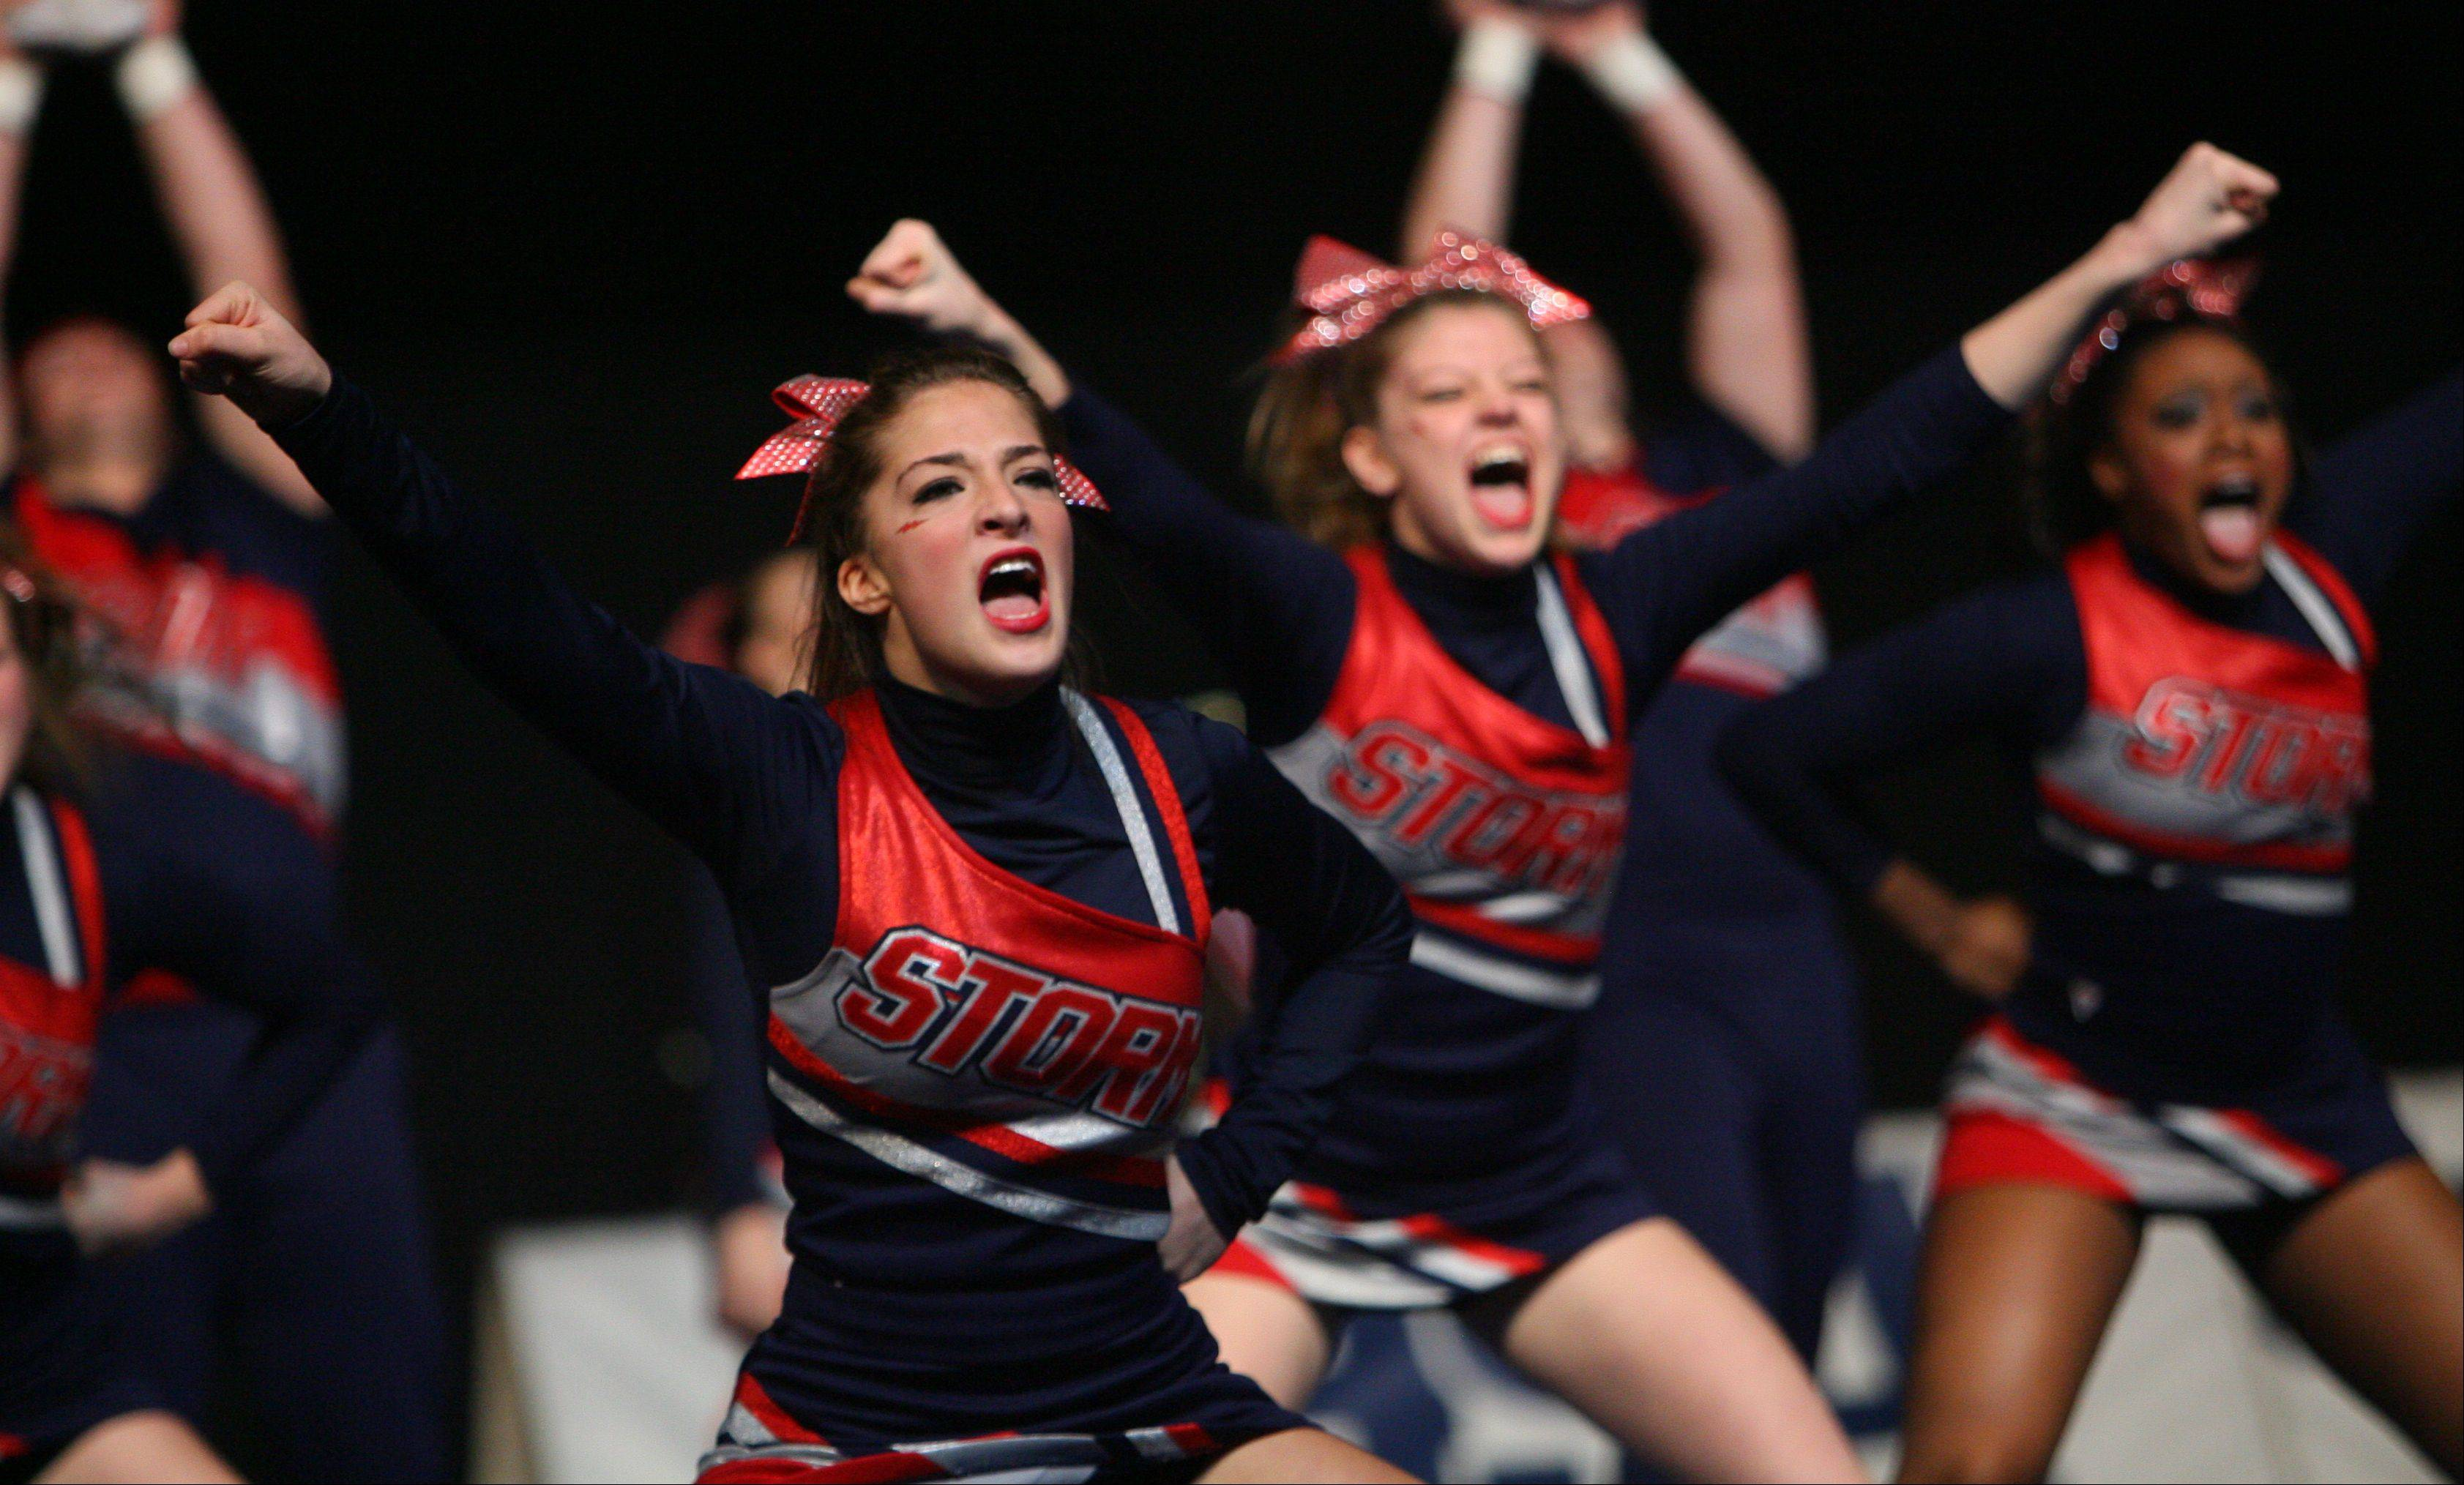 Images: Competitive Cheerleading finals